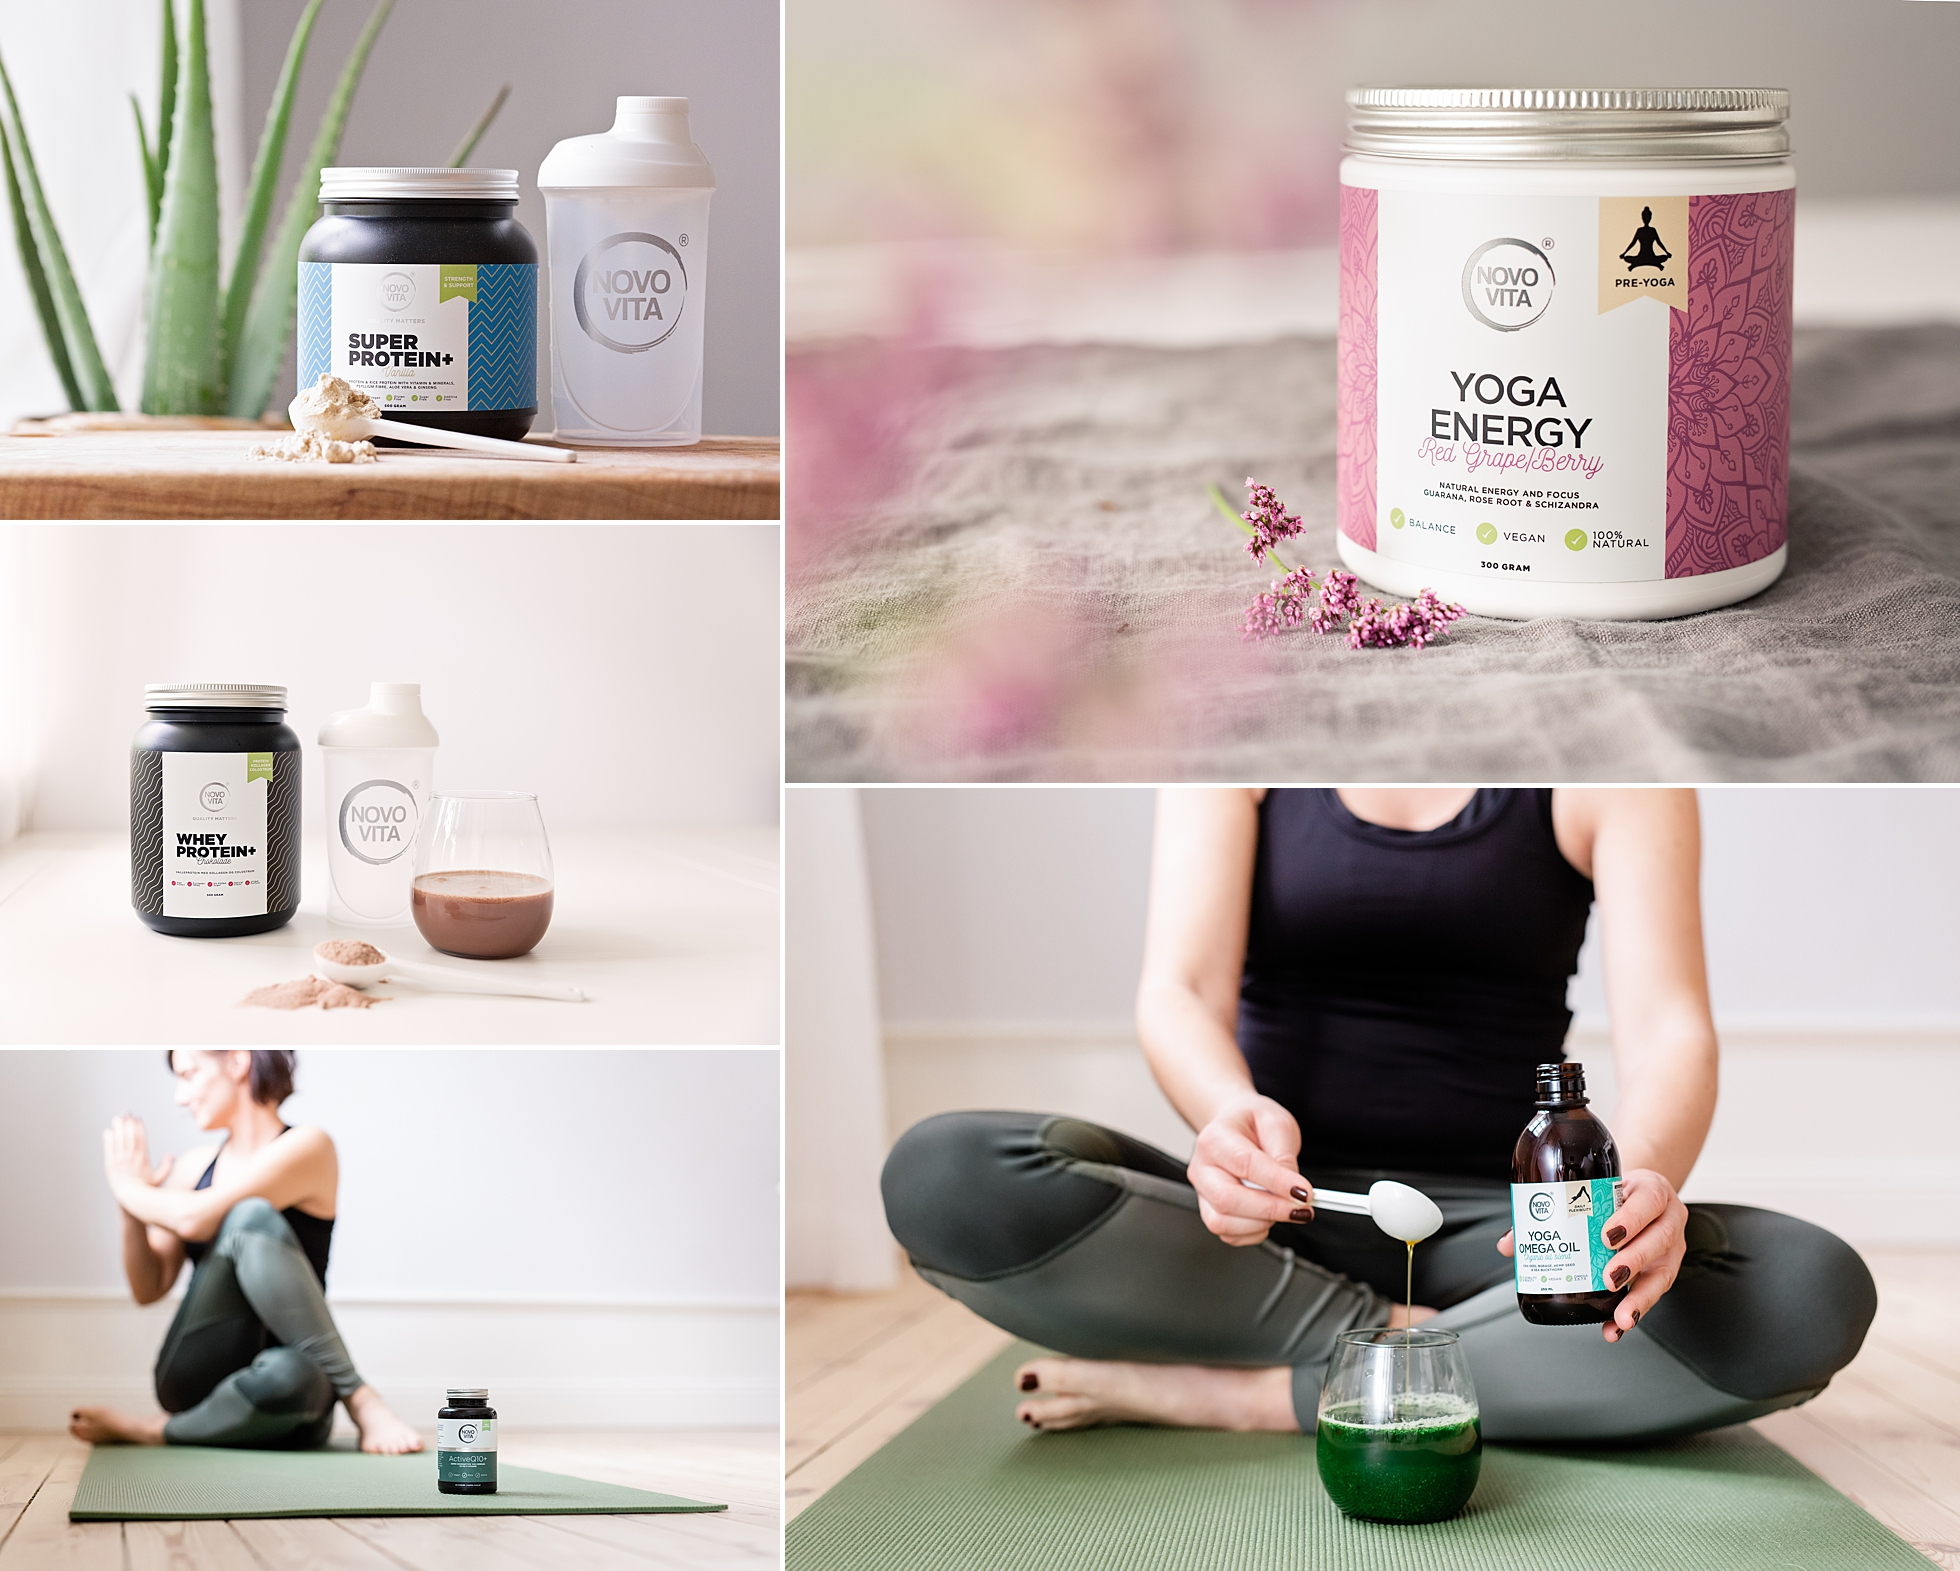 Product photos of yoga healthcare products